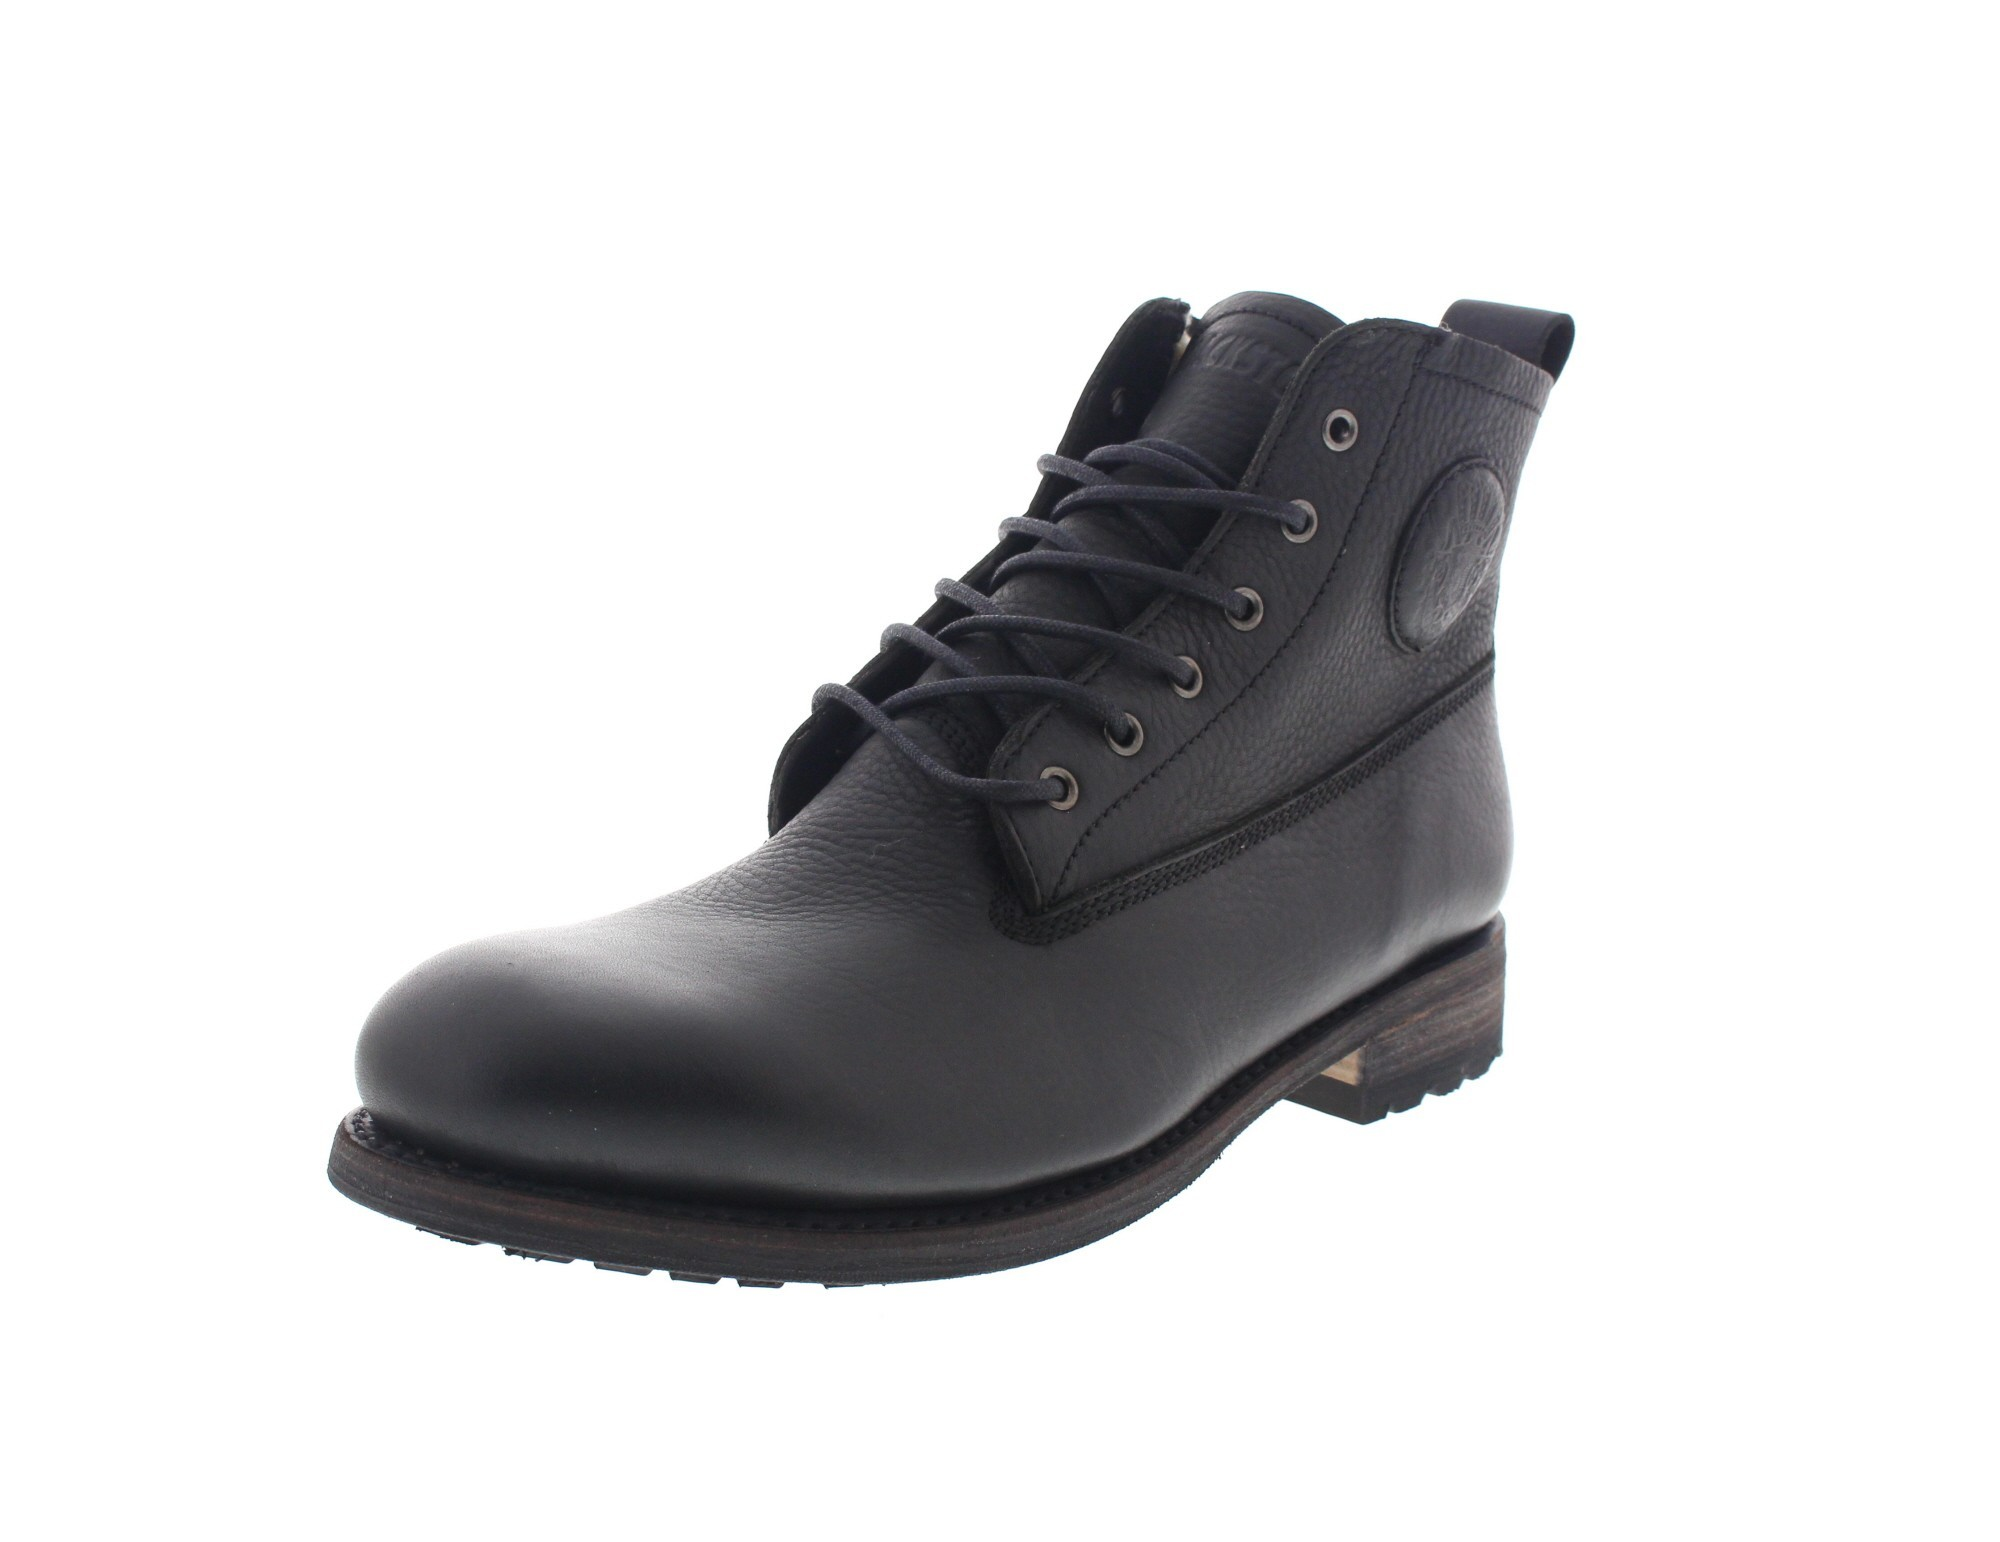 BLACKSTONE in Übergröße - Premium-Boots GM10 FUR black